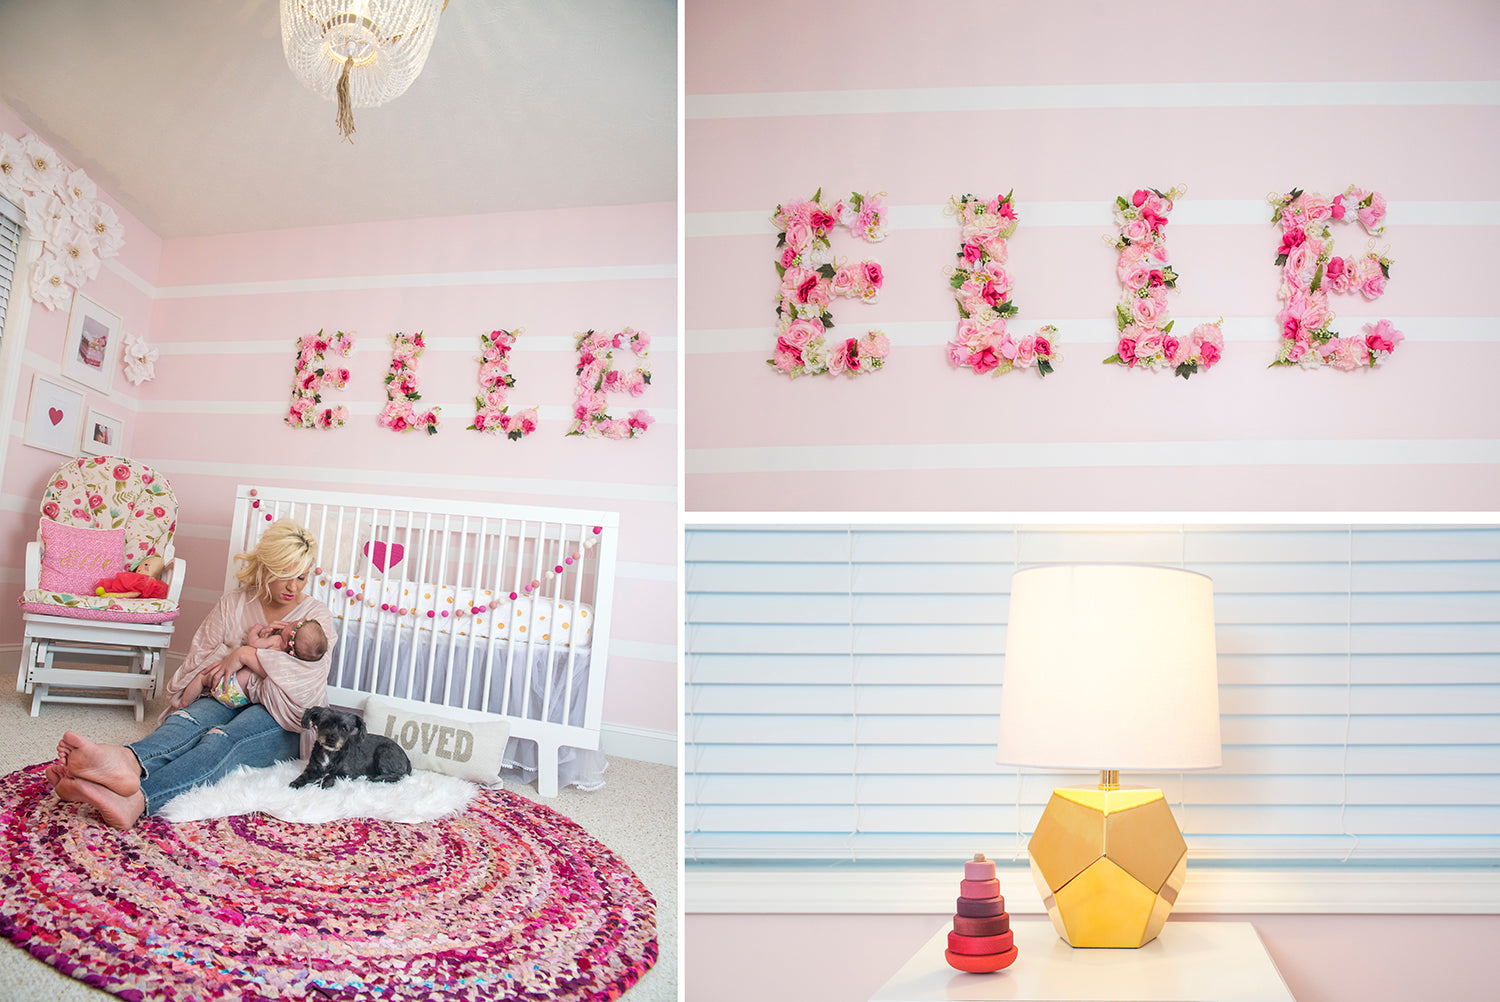 Pretty in pink baby elle 39 s nursery inspiration eccentrics for Elle decor nursery